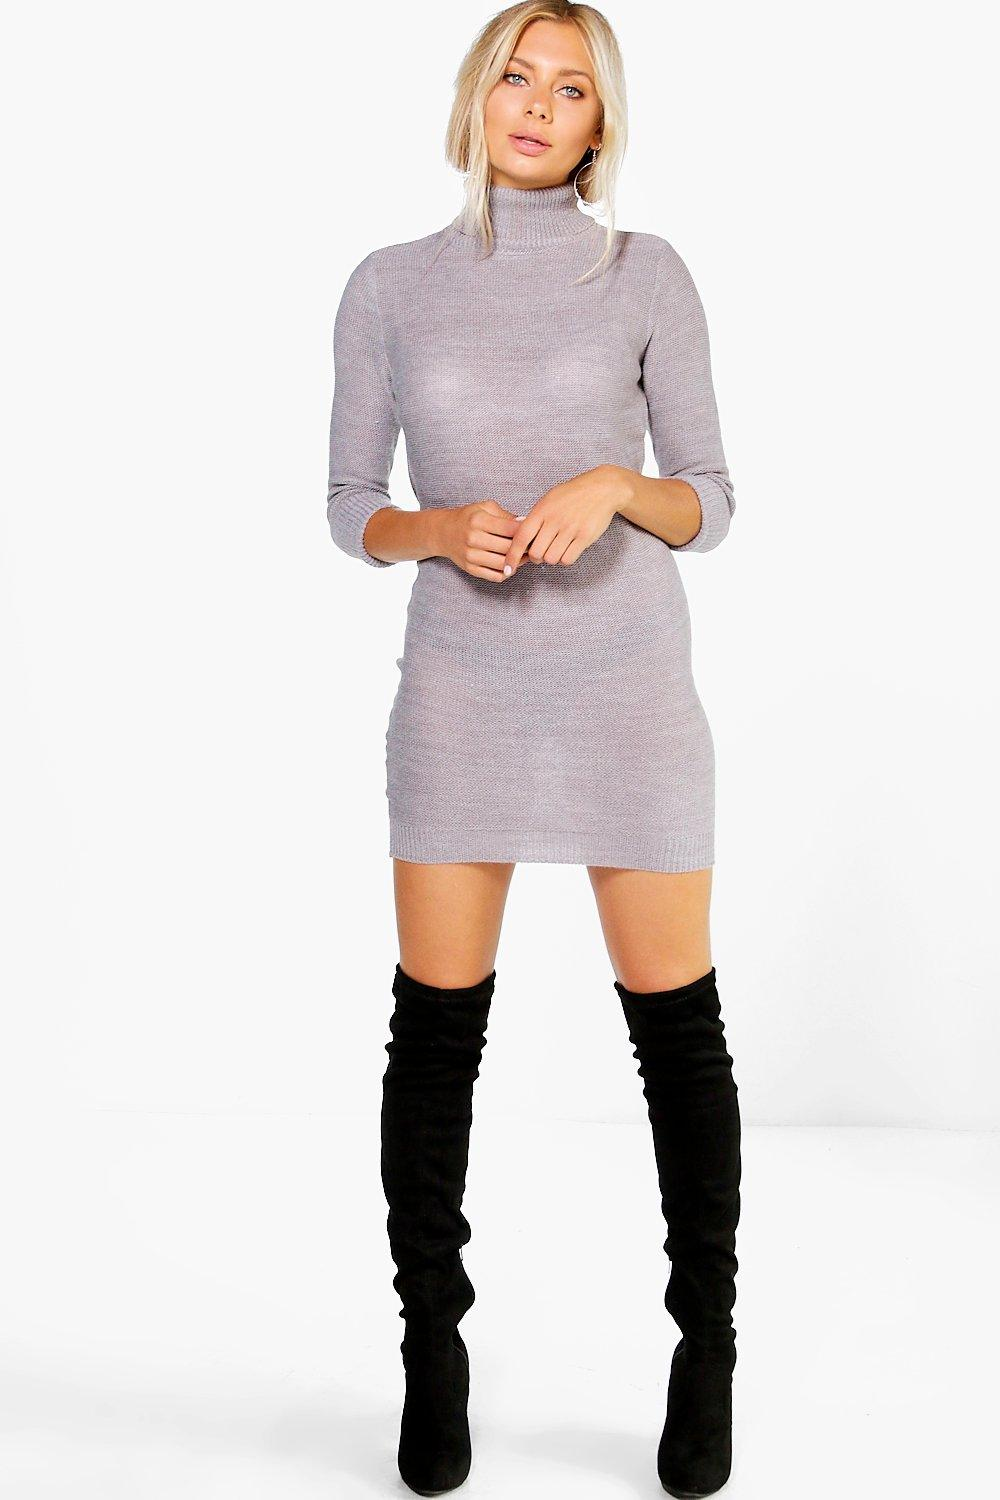 Roll Sleeve Knitted Dress - grey